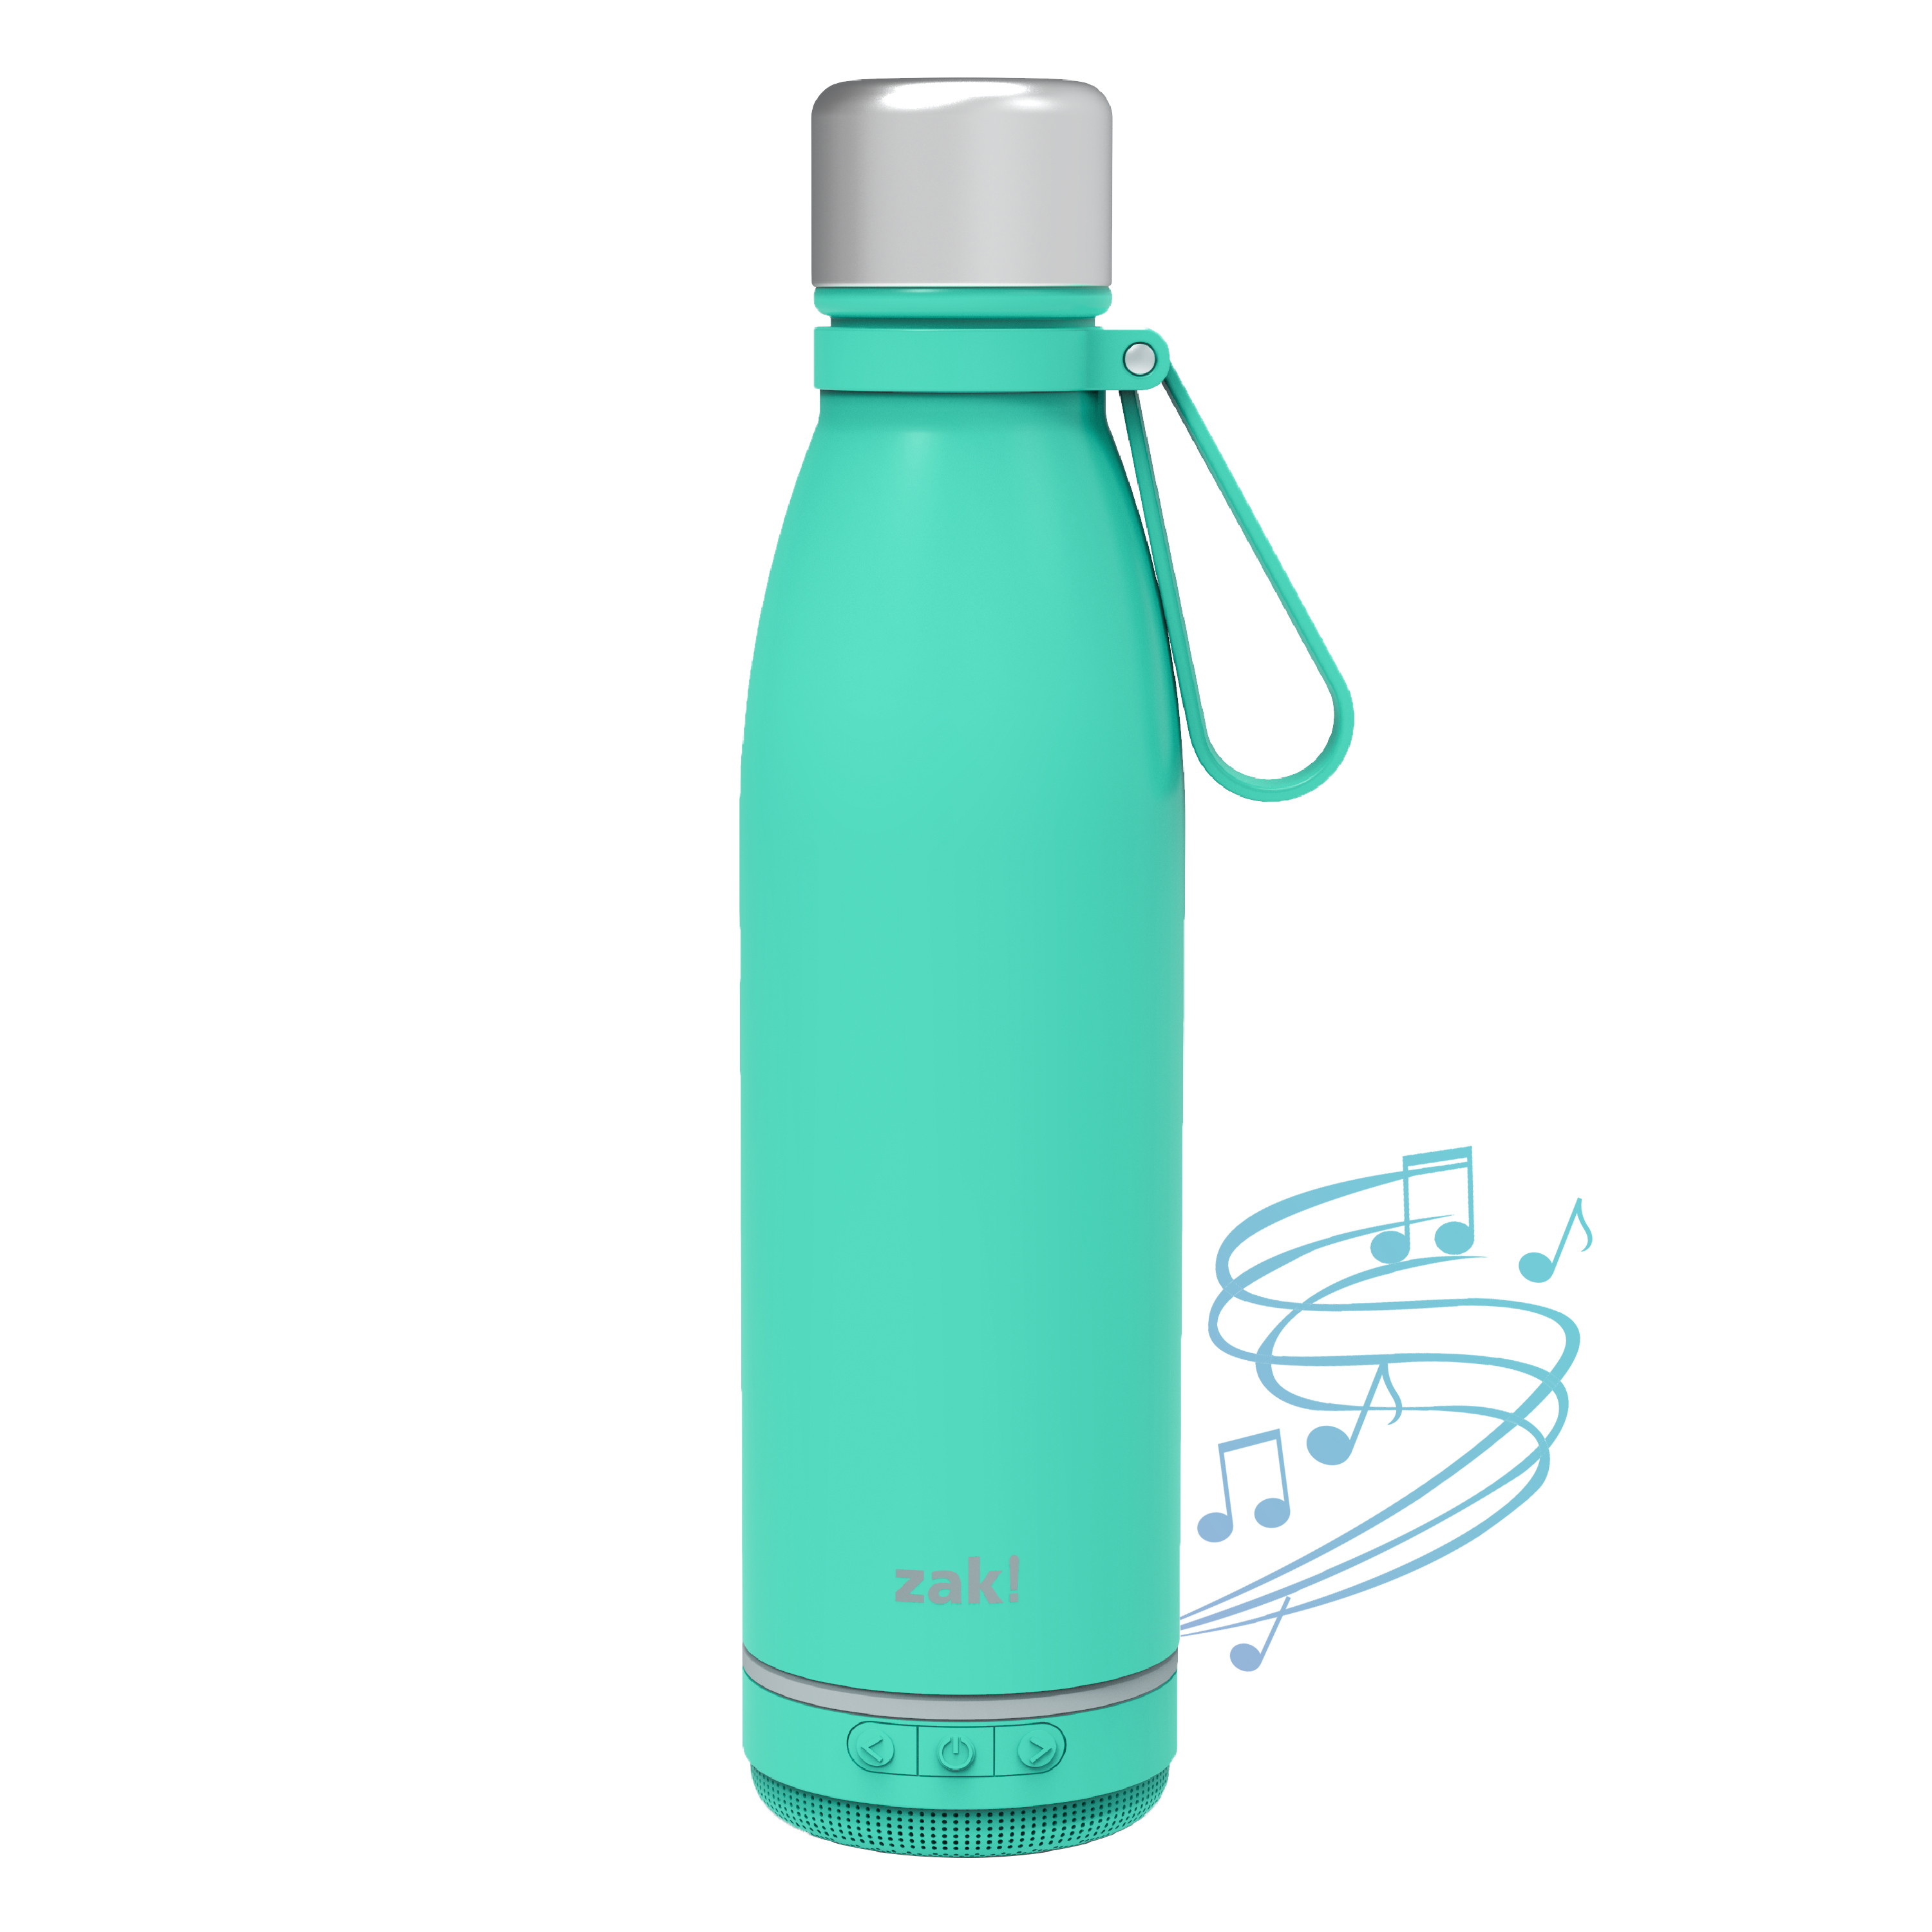 Zak Play 17.5 ounce Stainless Steel Tumbler with Bluetooth Speaker, Teal slideshow image 2